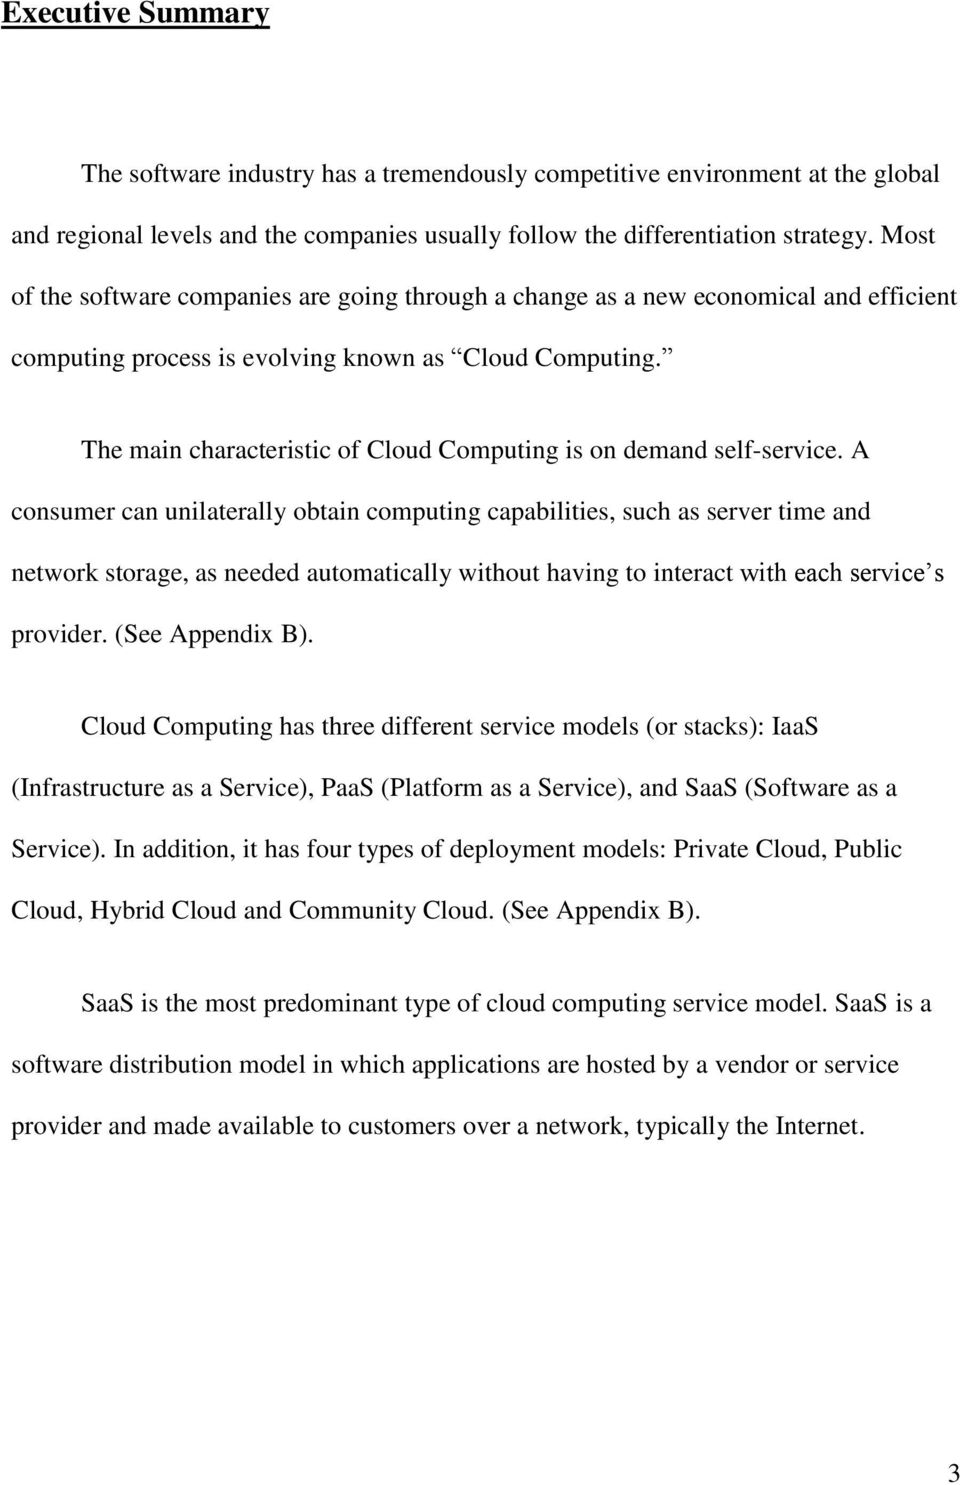 The main characteristic of Cloud Computing is on demand self-service.